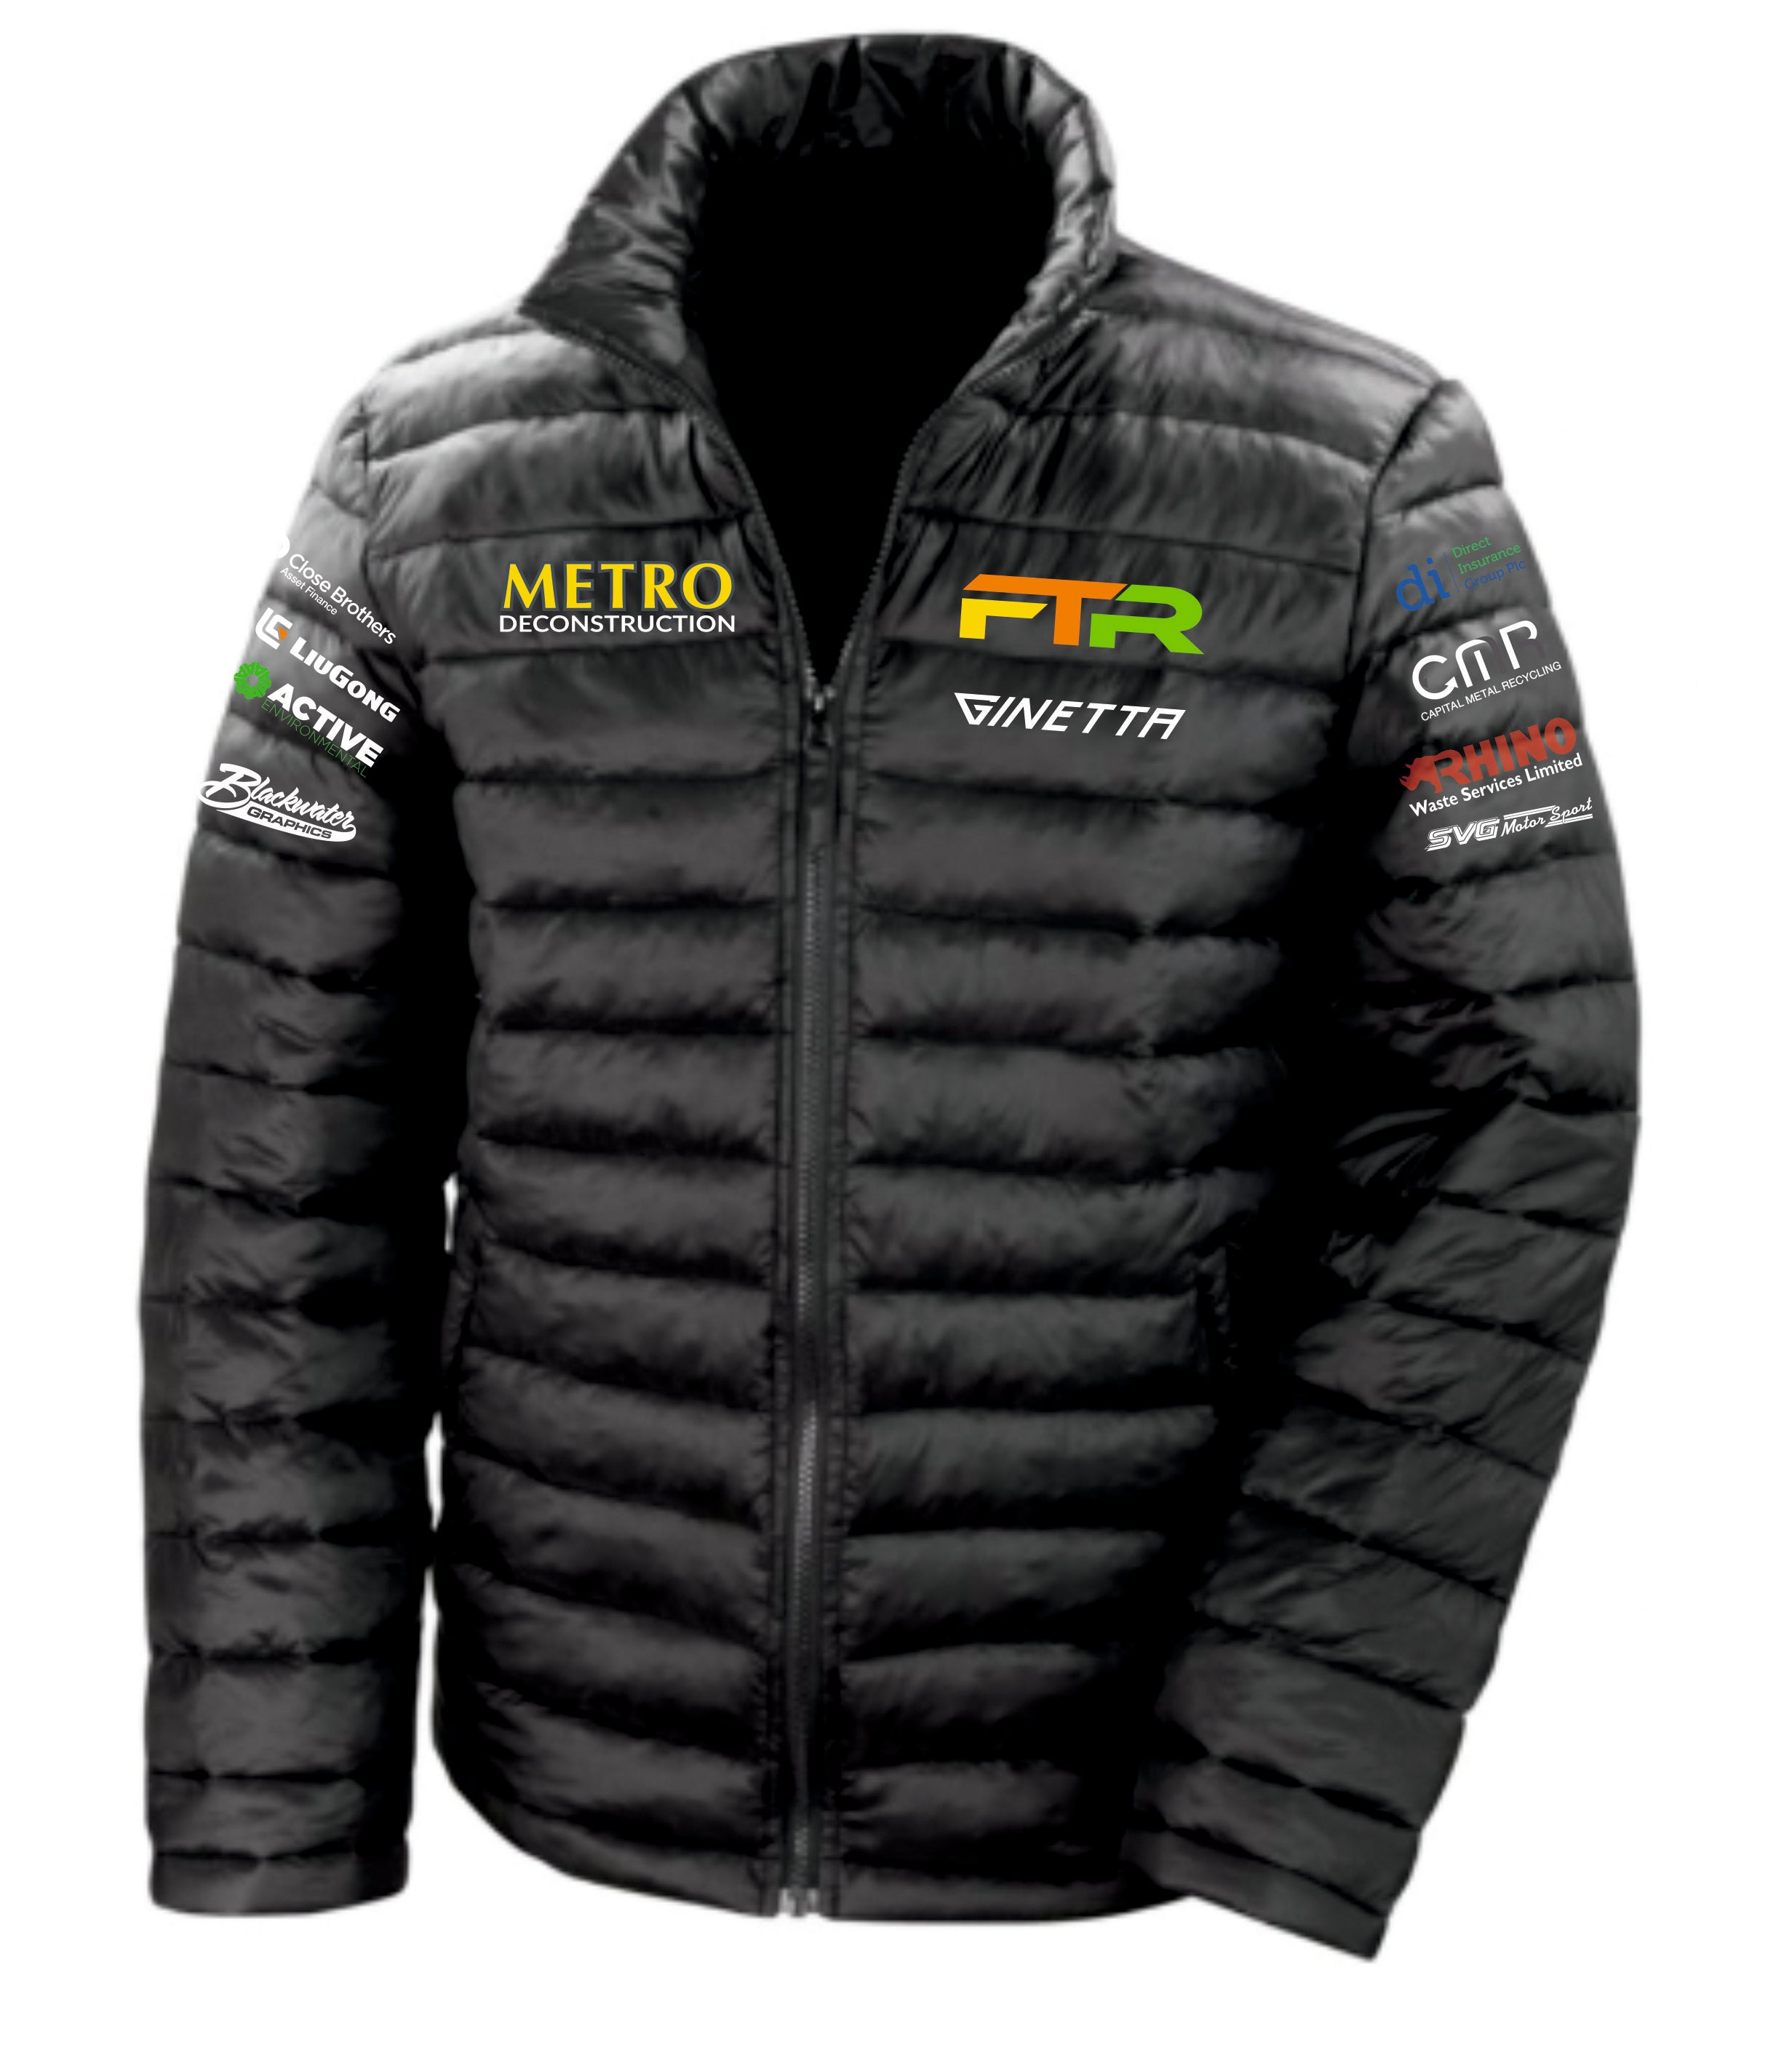 Frankie Taylor Racing Padded Jacket (non-hooded)